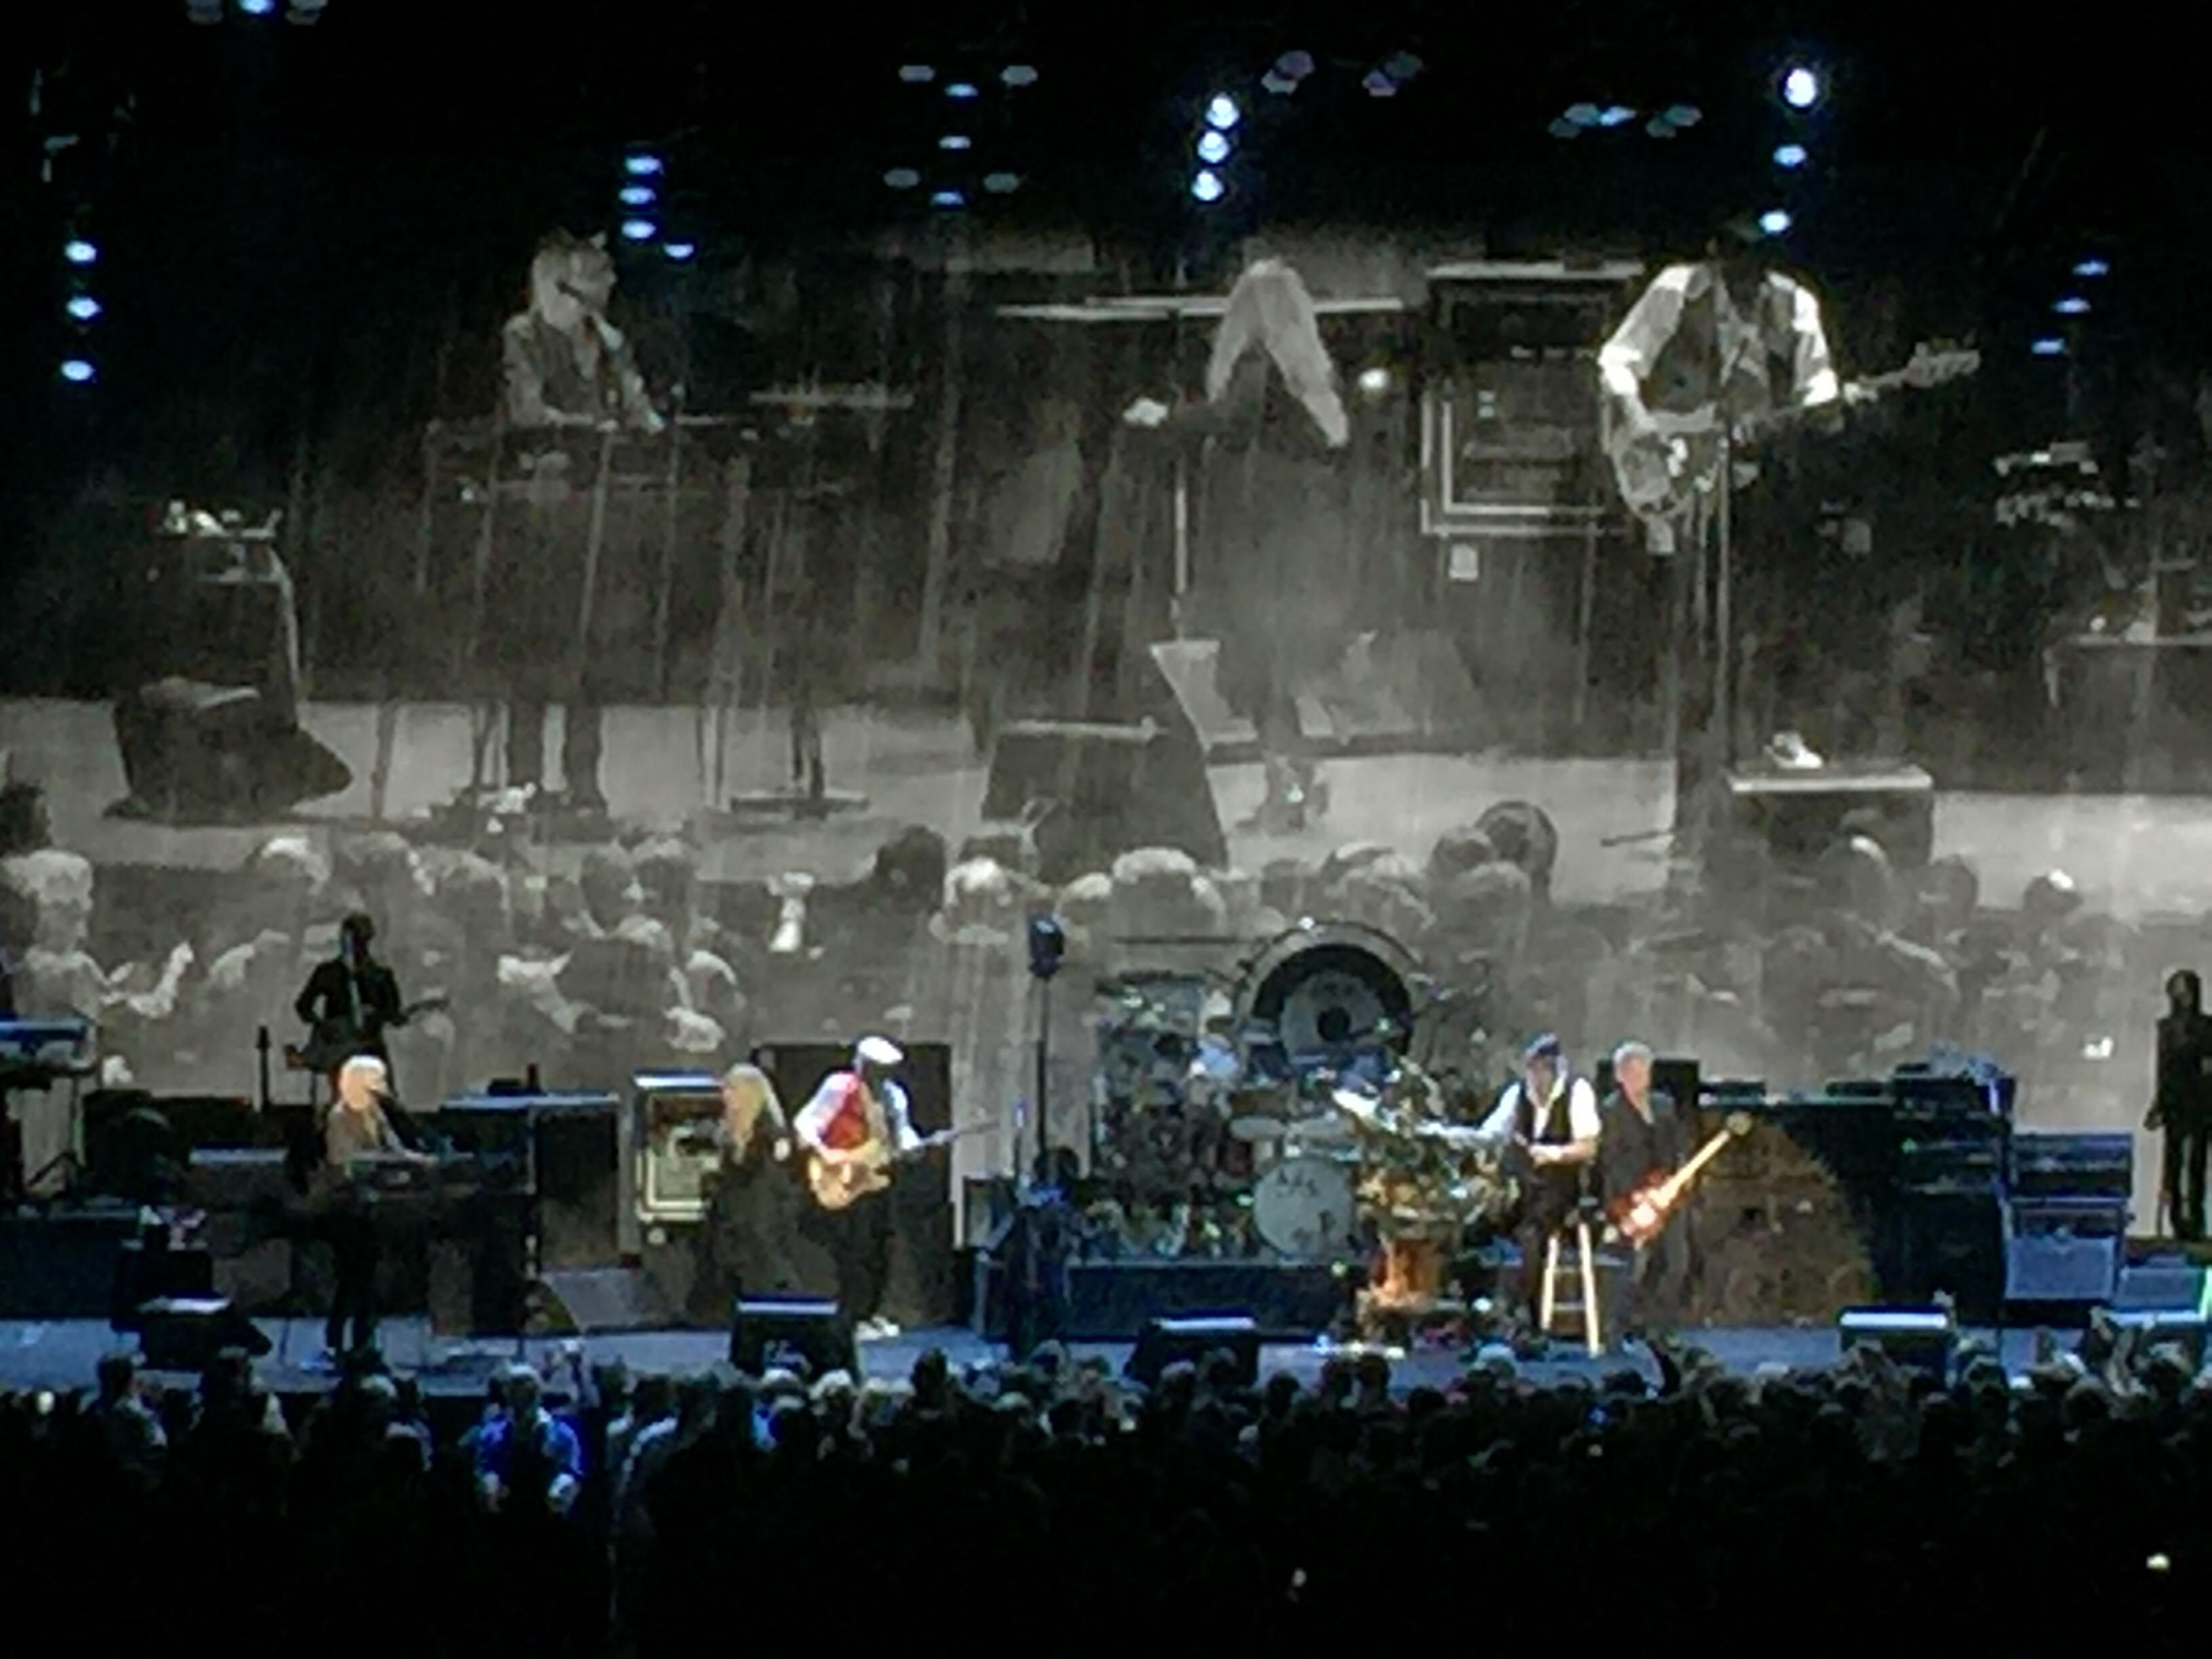 Oracle Arena section 108 row 10 seat 11 - Fleetwood Mac 2014 vs On